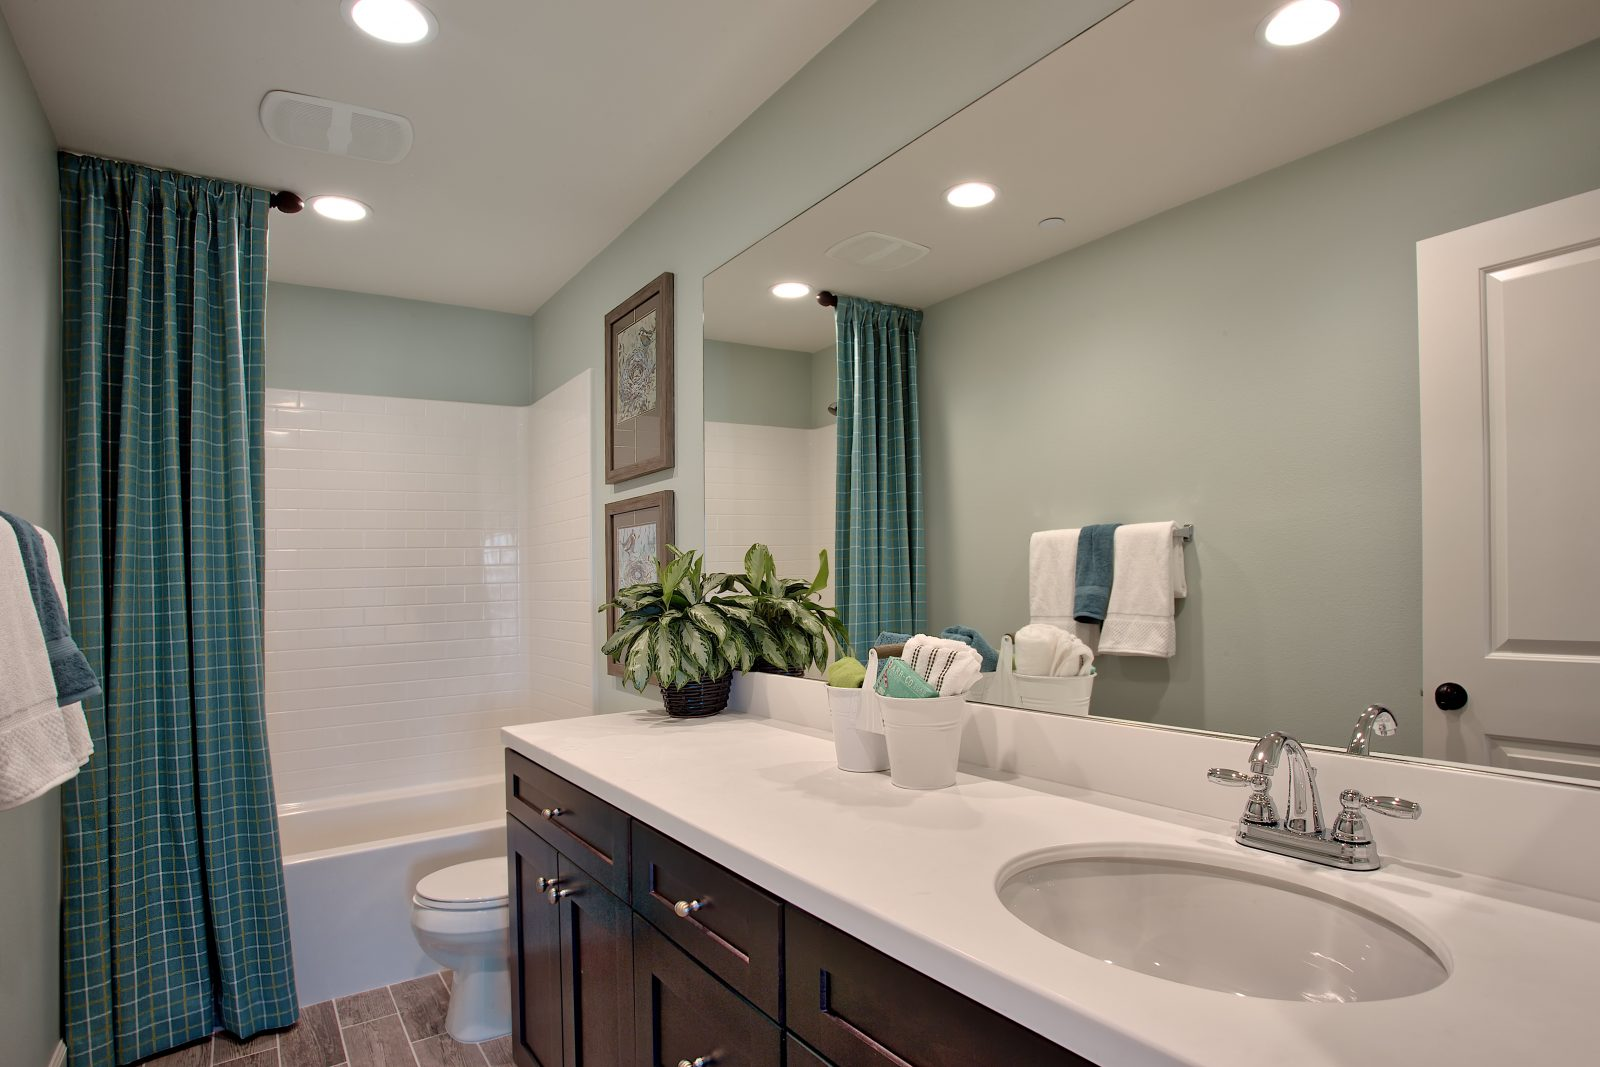 Bathroom | Nectar at Spencers Crossing in Riverside, CA | Brookfield Residential